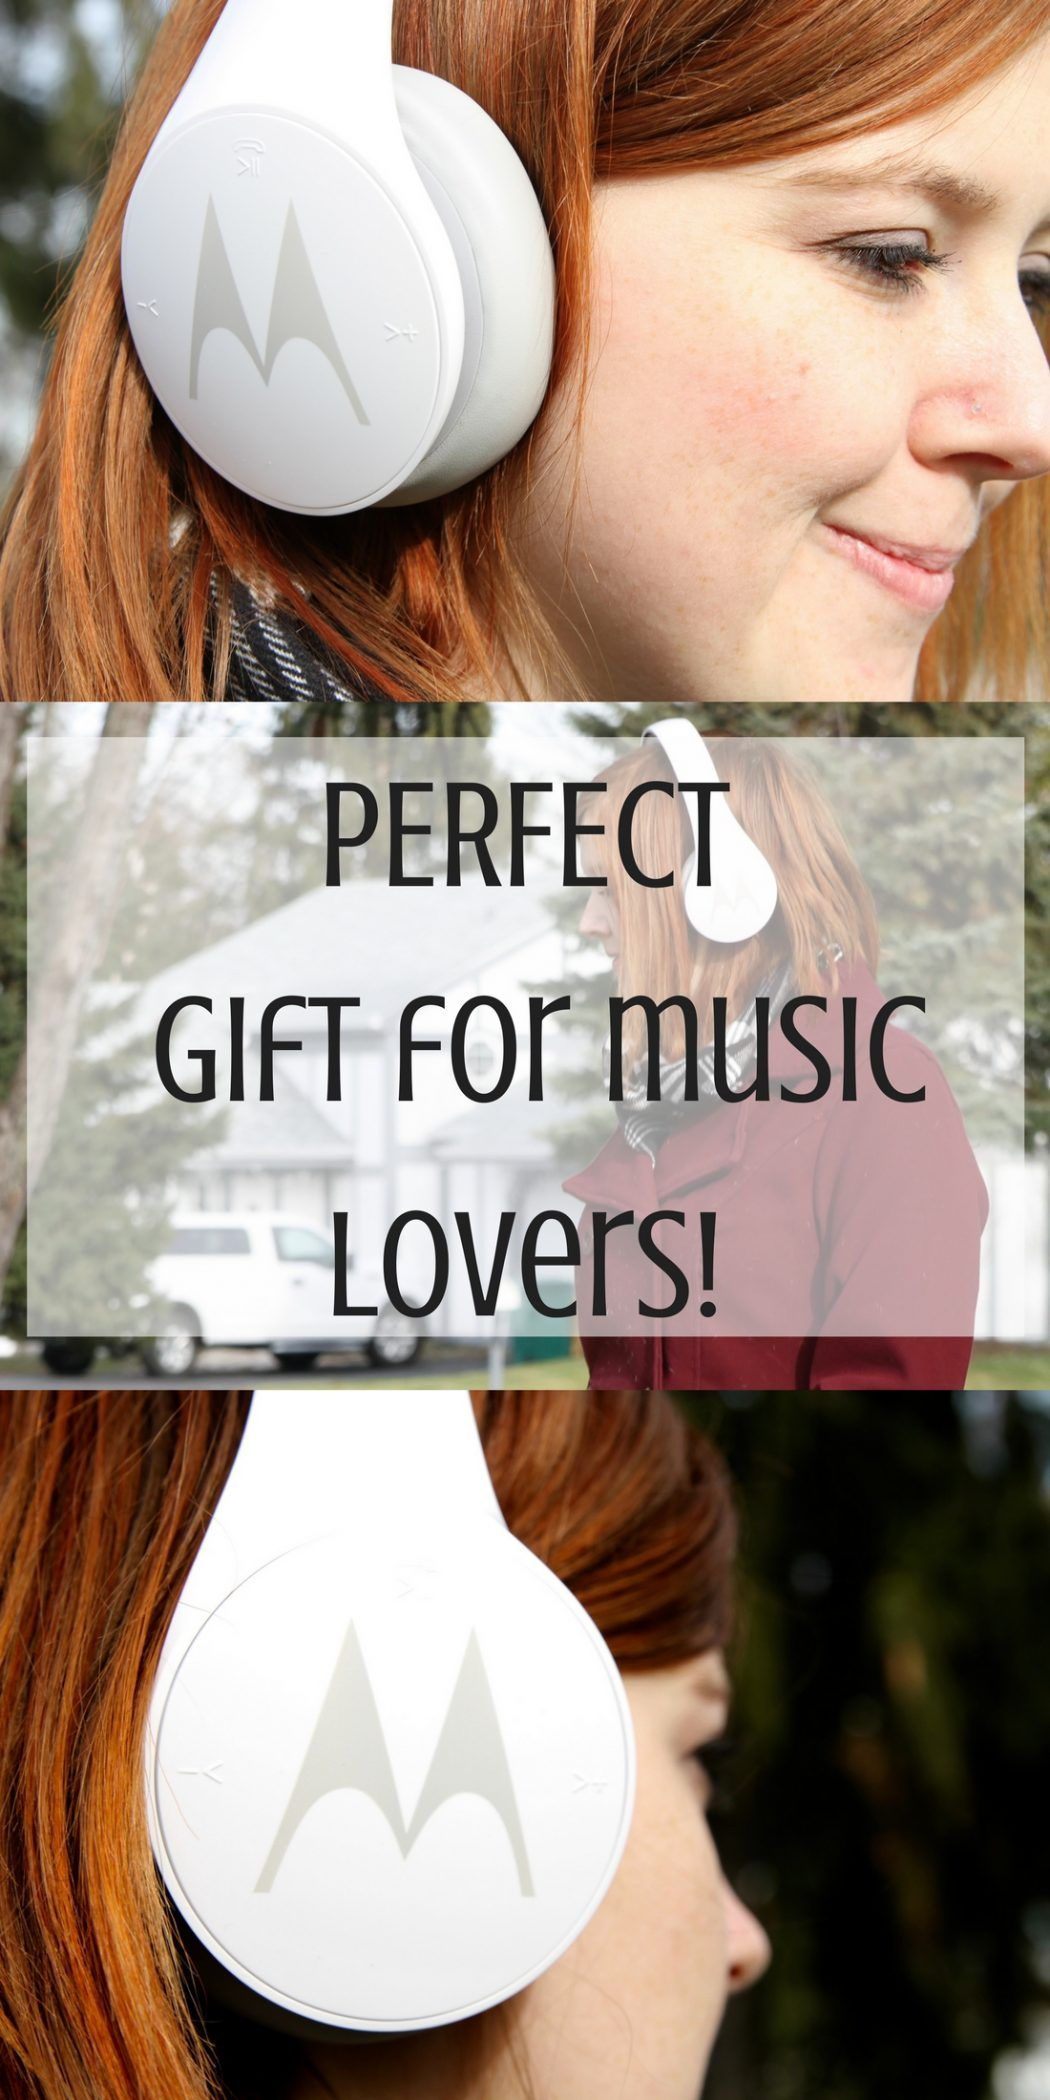 A perfect gift for music lovers motorola pulse escape